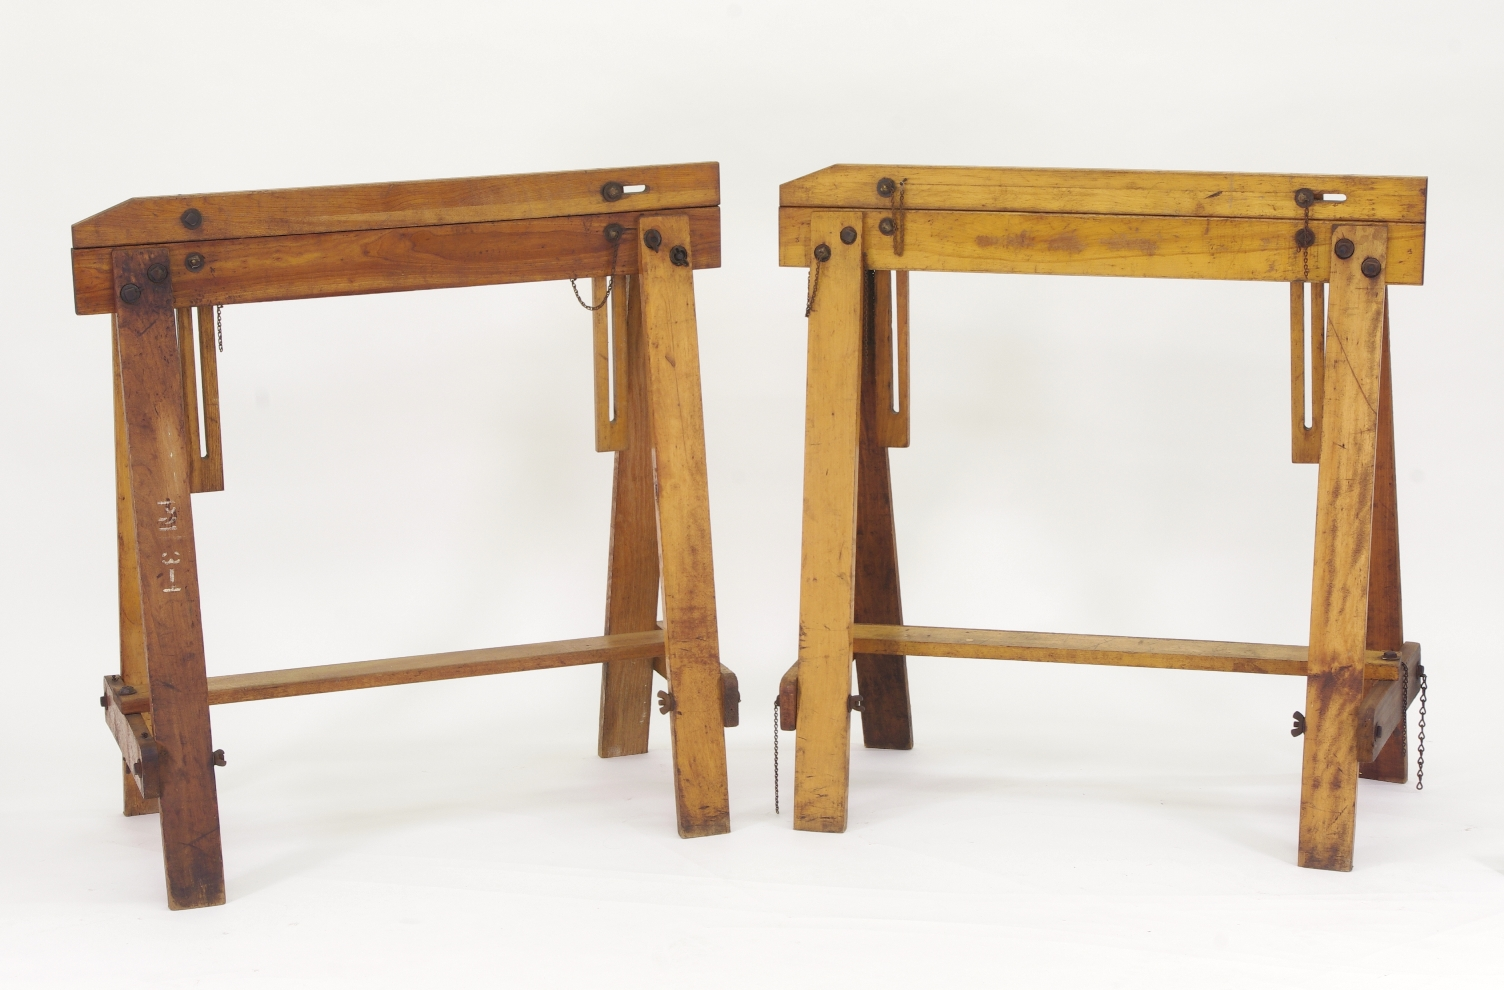 View 10: Pair of Adjustable Sawhorses c. 1920